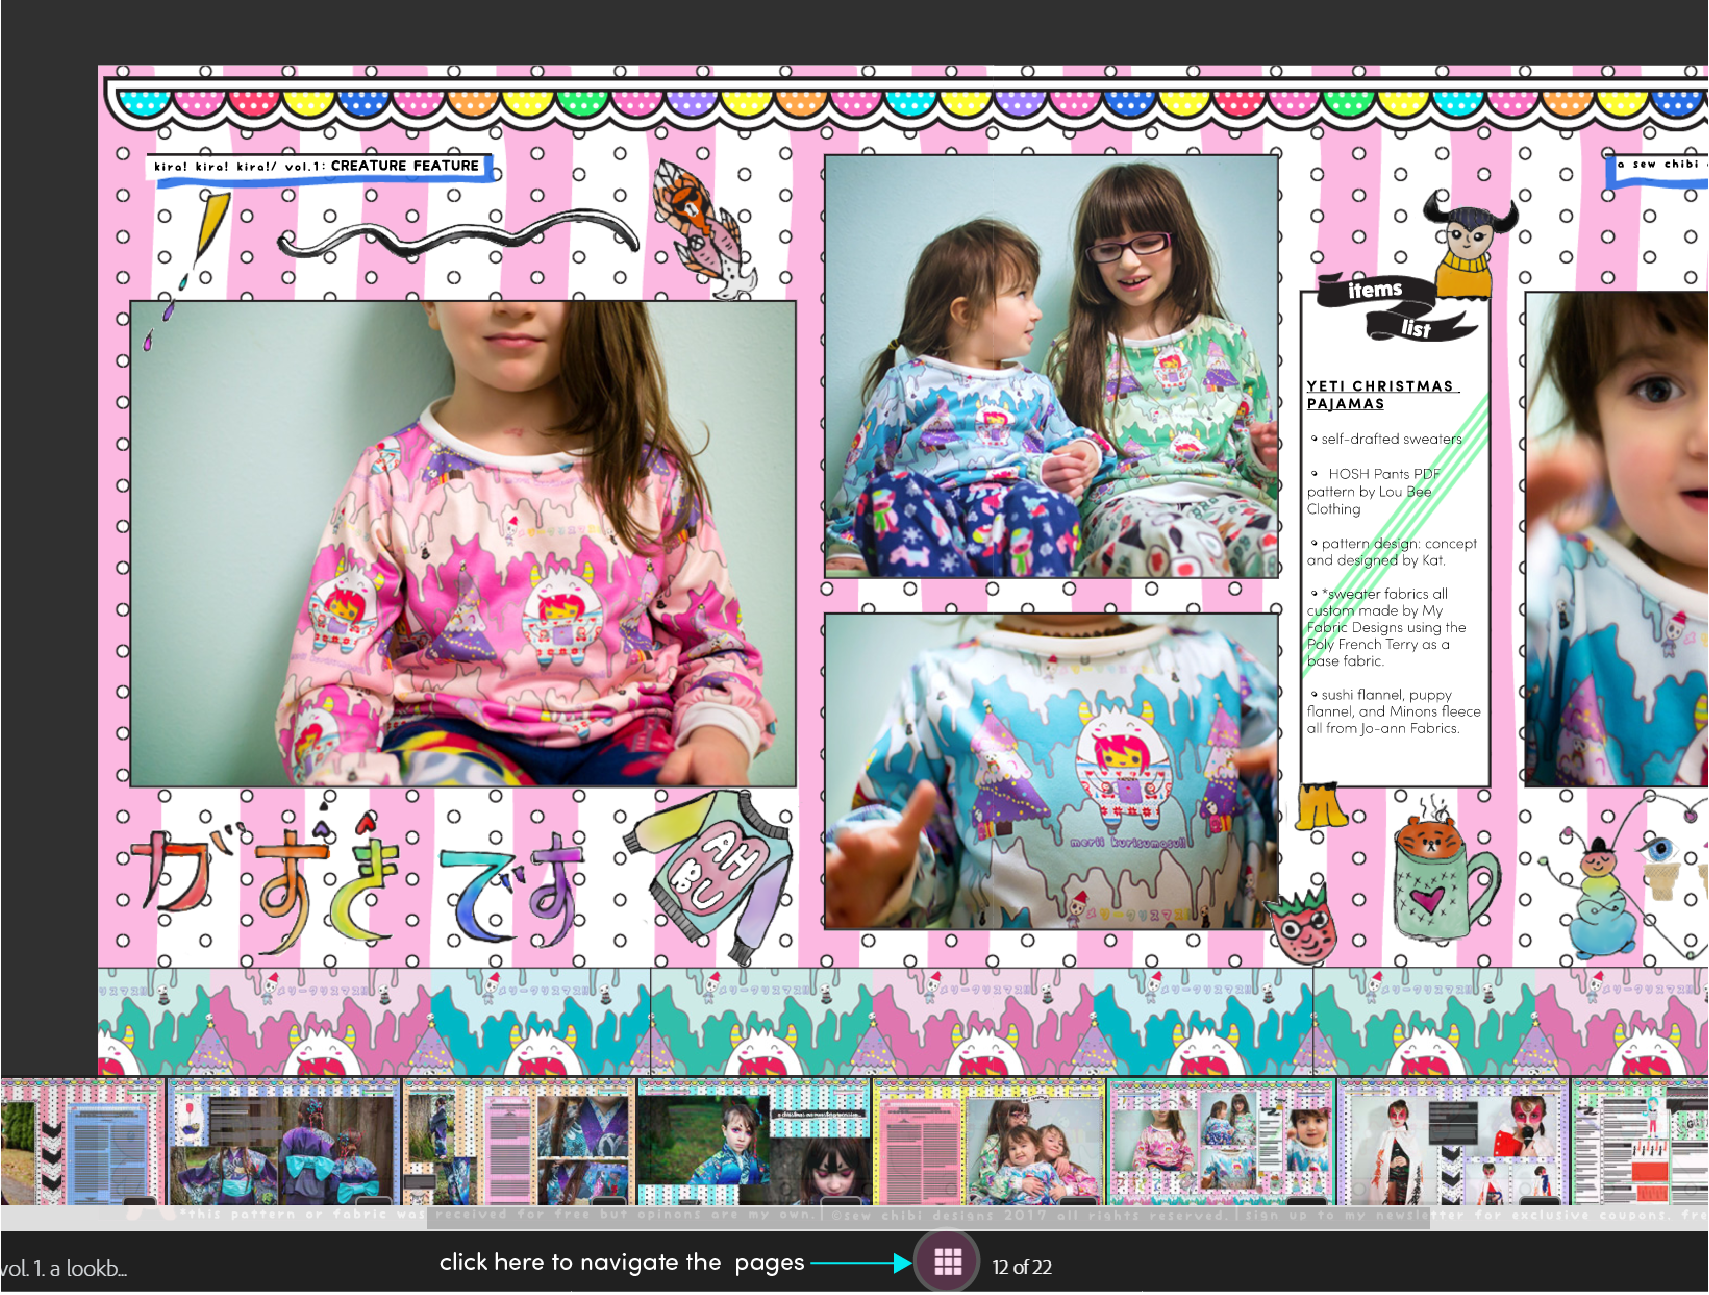 kira kira kira a lookbook by sew chibi designs!